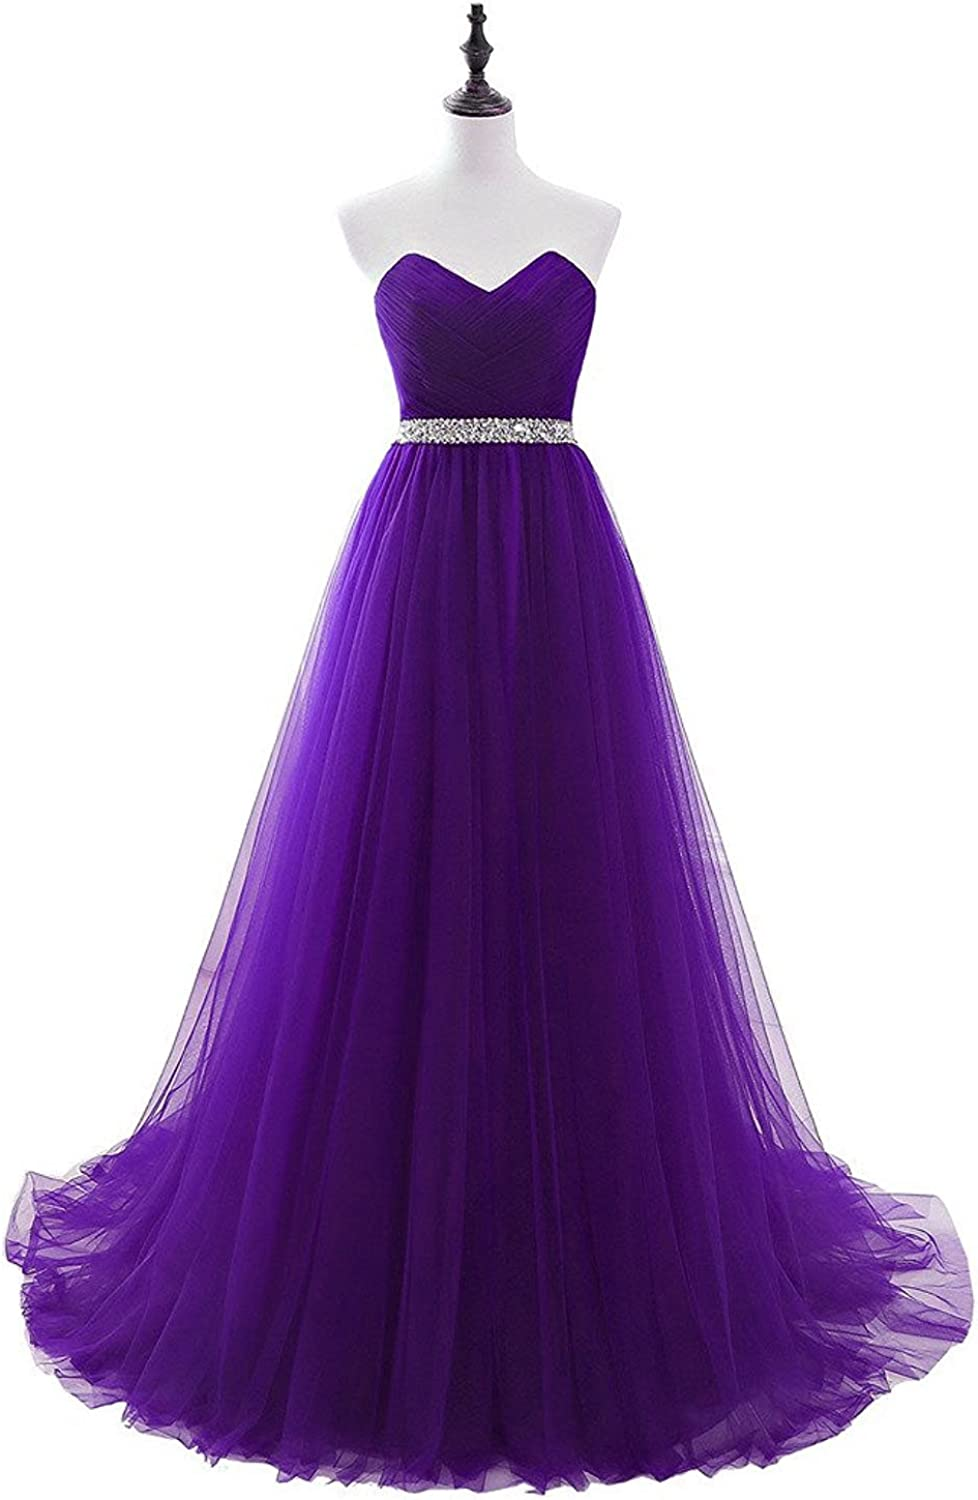 Uther Long Evening Dresses Tulle Bridesmaid Prom Dress Aline Party Gowns with Beads Belt